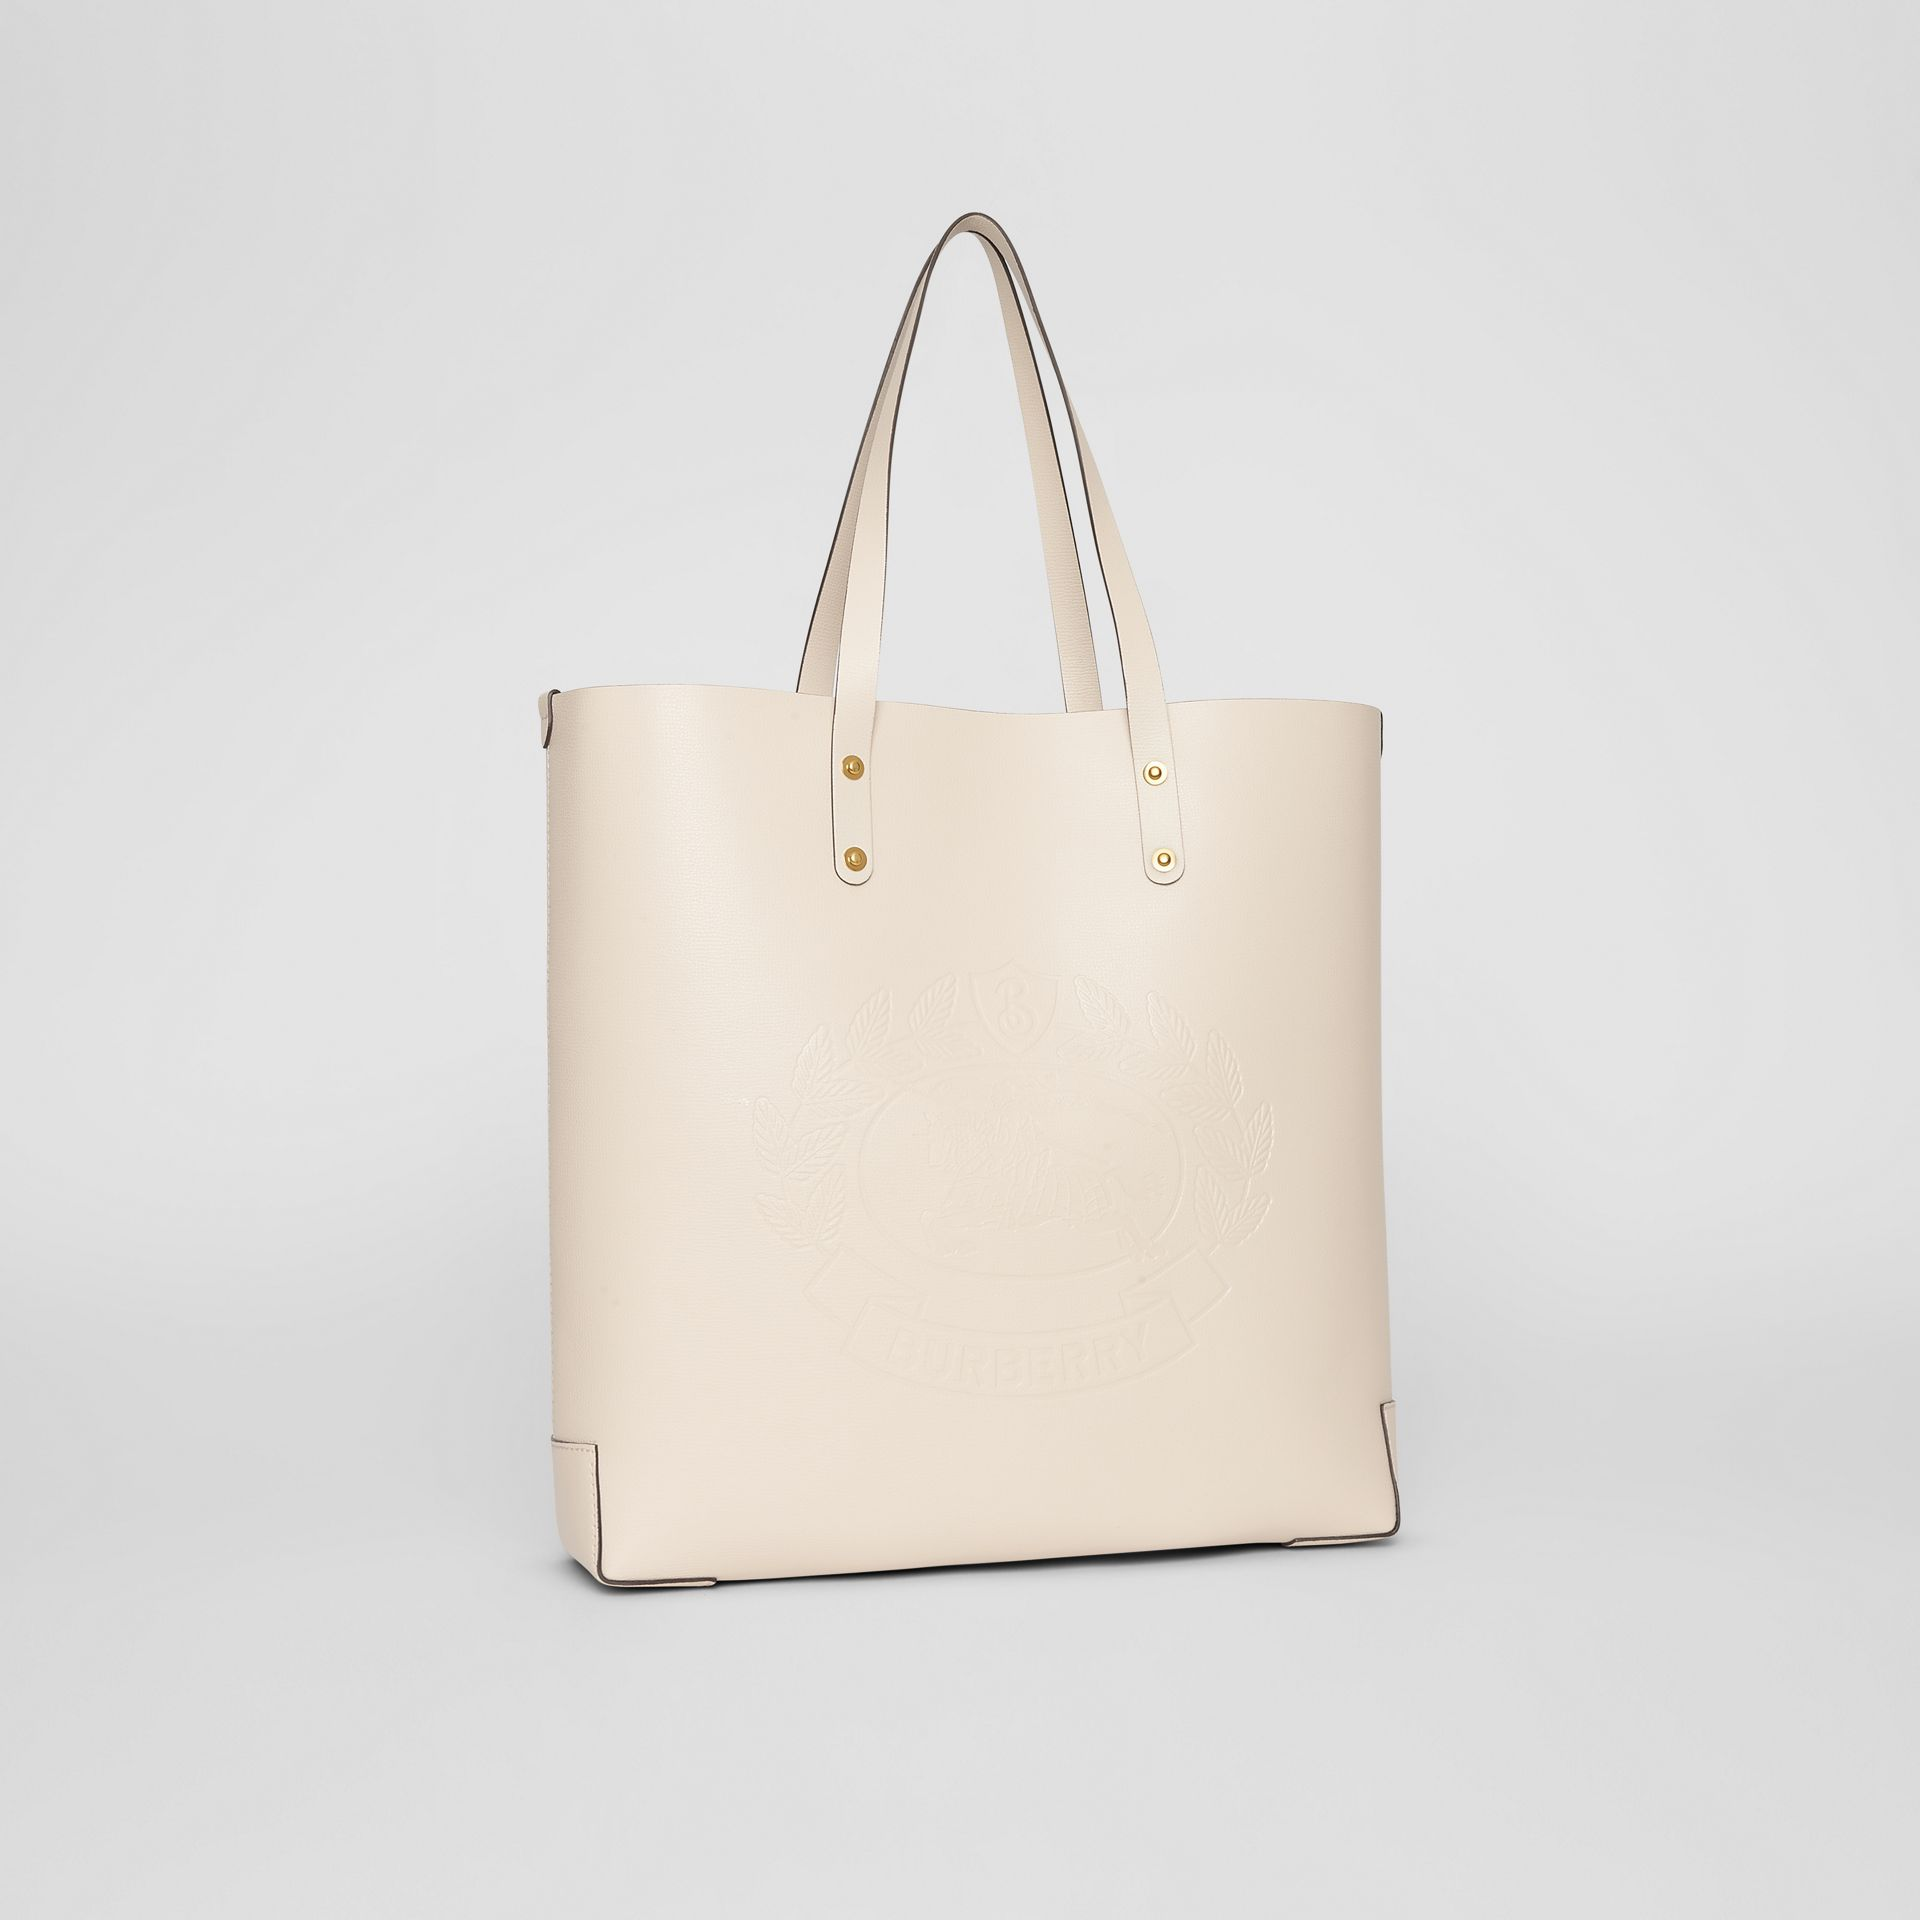 Embossed Crest Leather Tote in Limestone | Burberry - gallery image 6